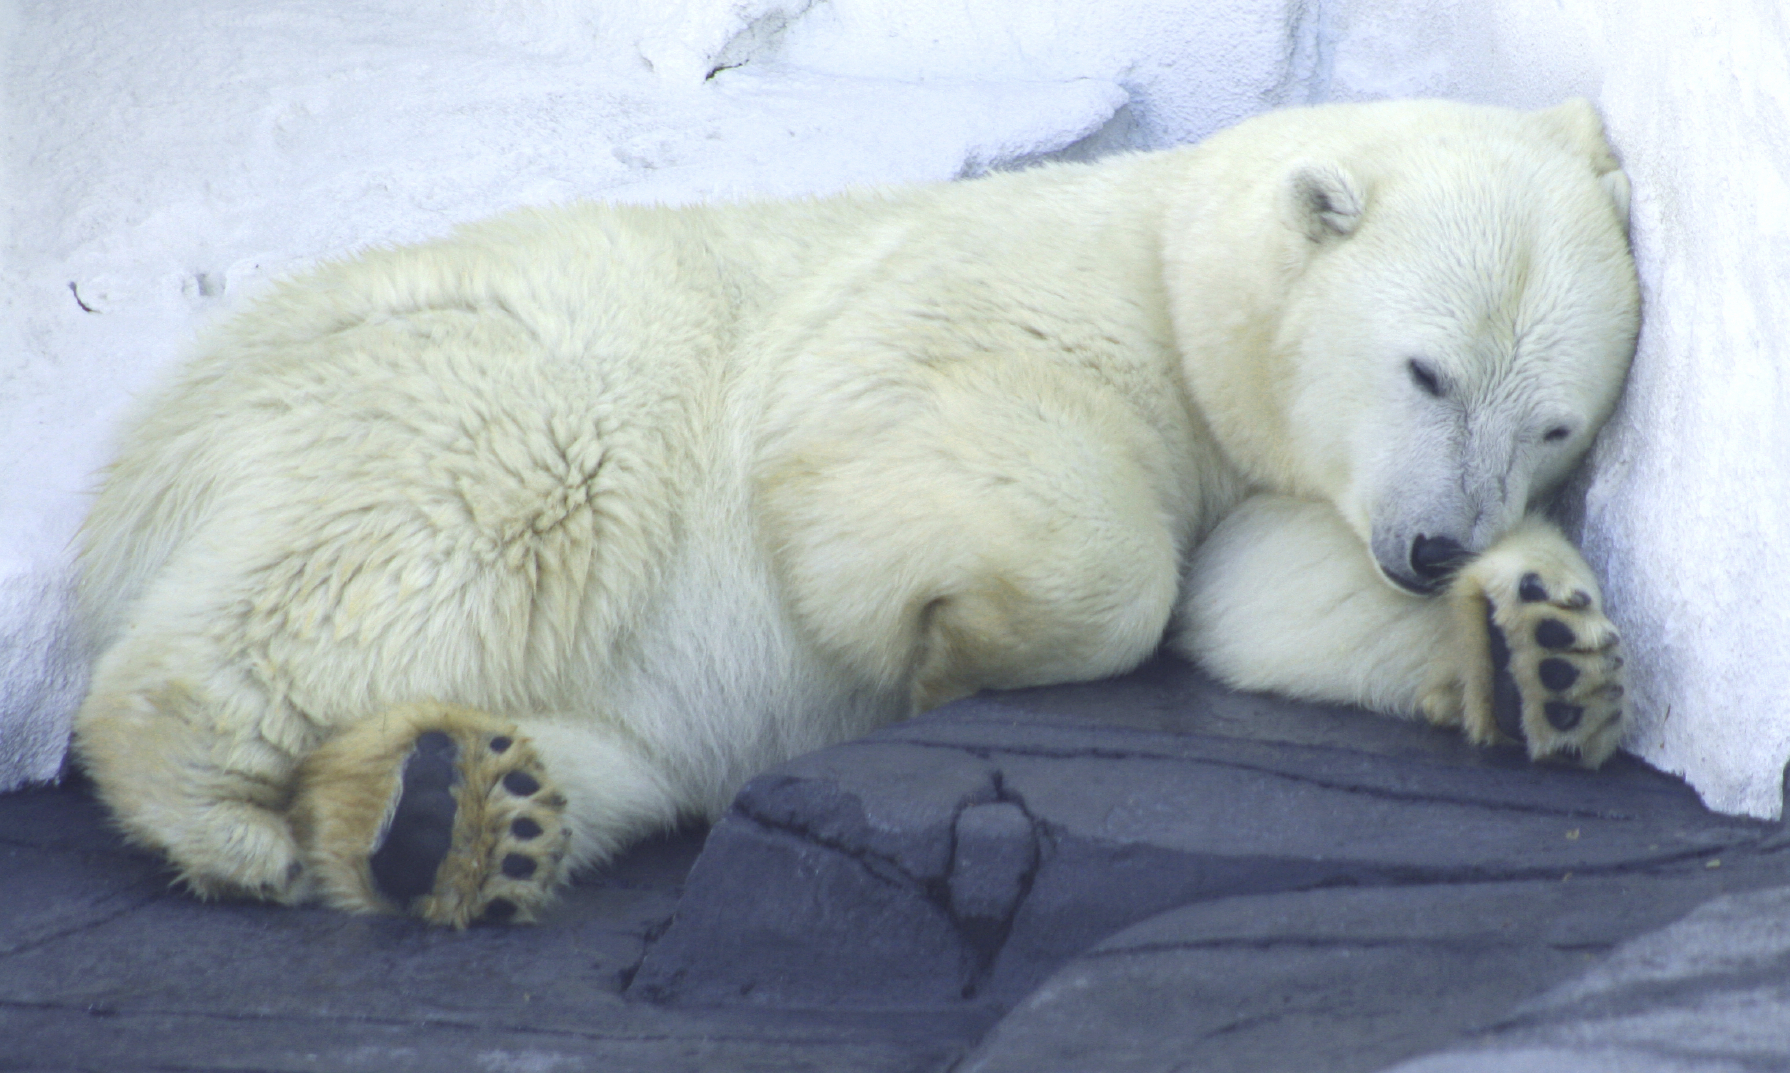 Animals That Hibernate - Hibernation animals go without food or water for months at a time